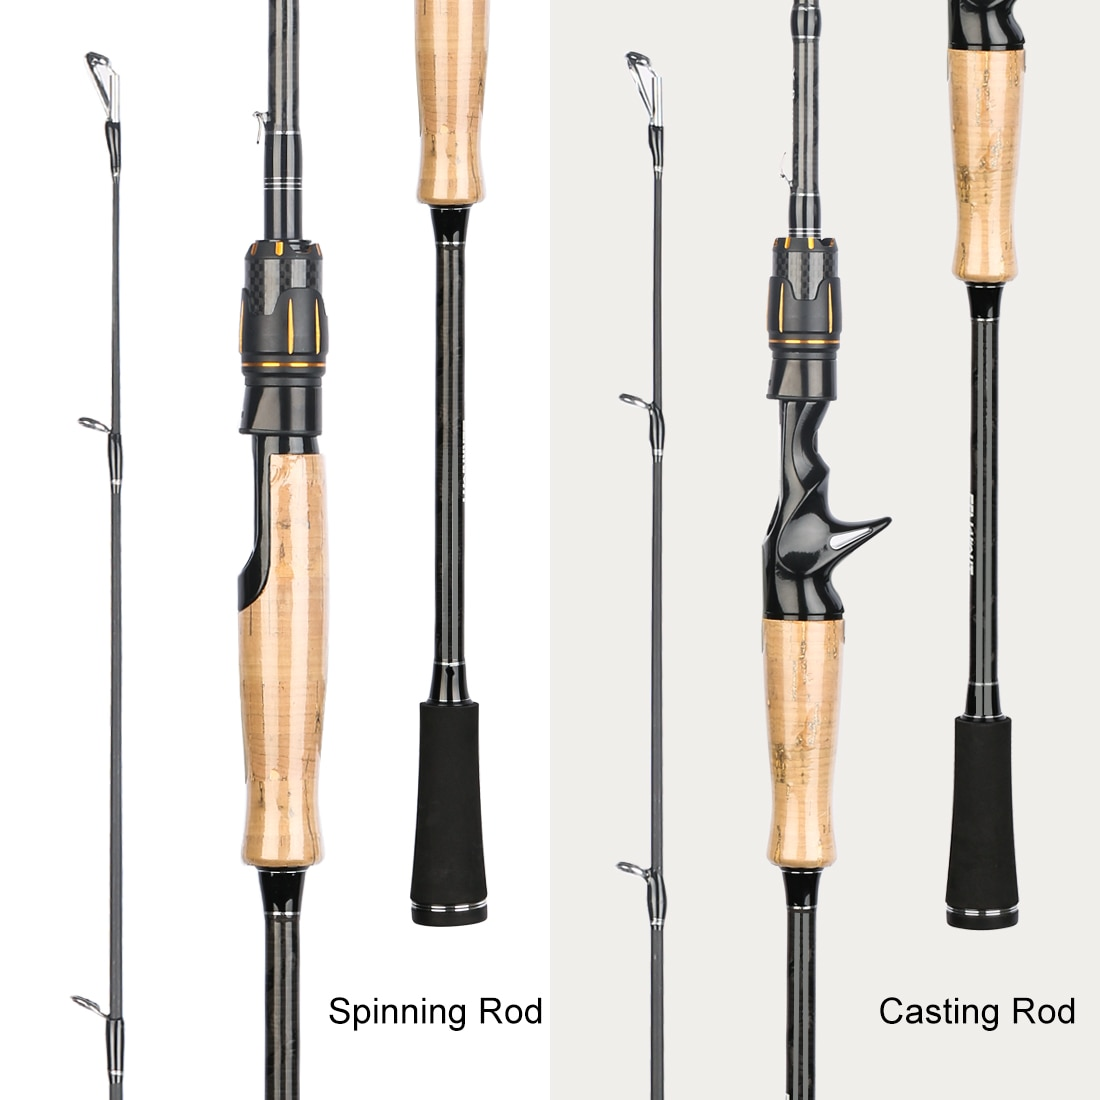 Brand Falcon II Series Fishing Rod 1.98m 2.1m 2.4m UL/L/ML/M/MH/H/XH Double-tip Carbon Lure Rod Spinning/Casting 1-80g enlarge